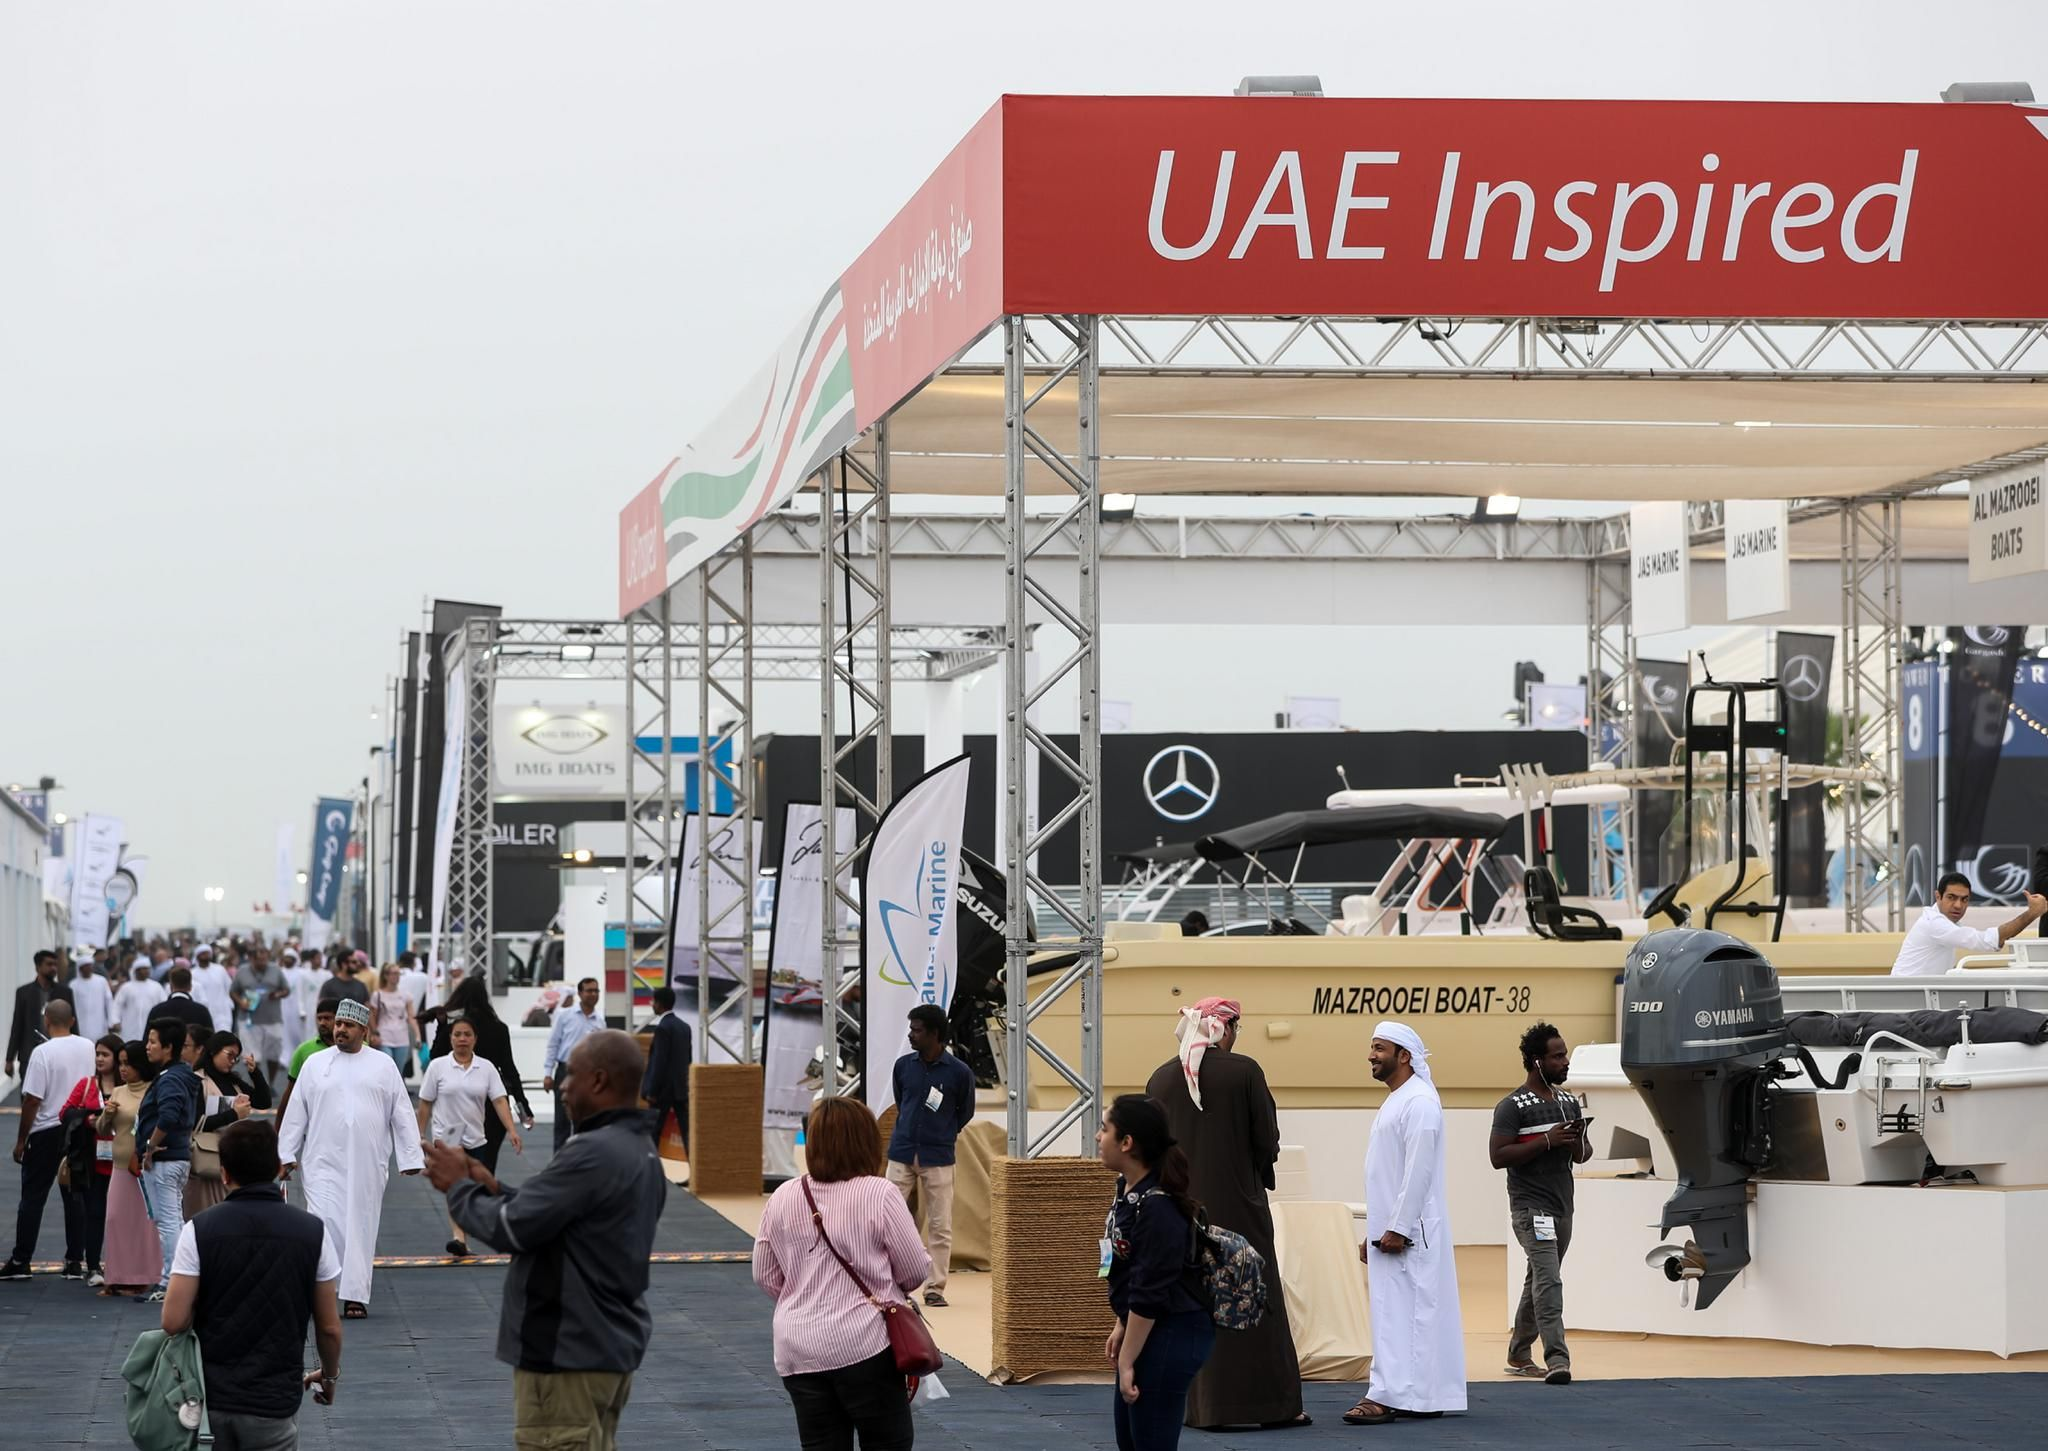 UAE Inspired Pavilion